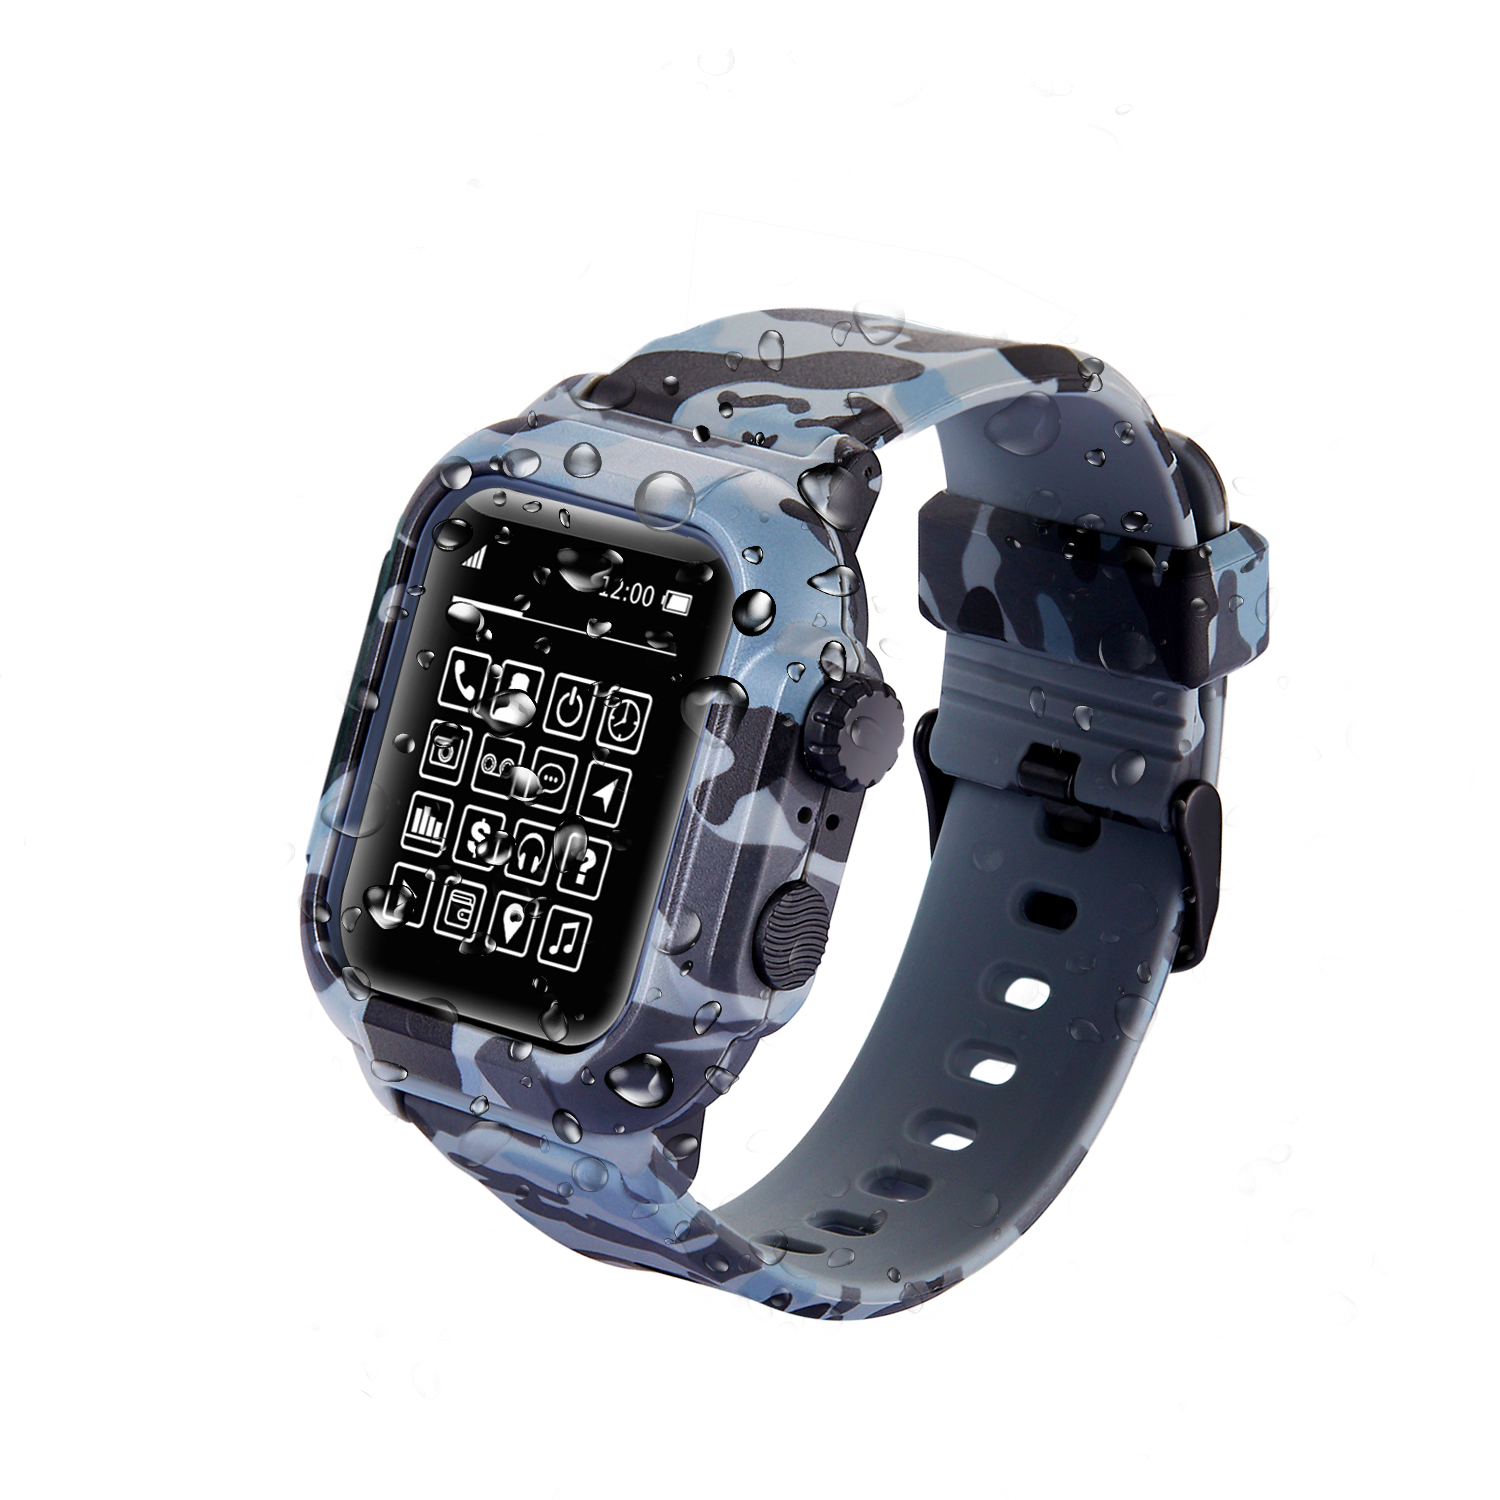 new arrival a4b91 0911a Details about Waterproof Sport Silicone Case Band Strap For Apple Watch  Series 4 3 2 42mm 44mm